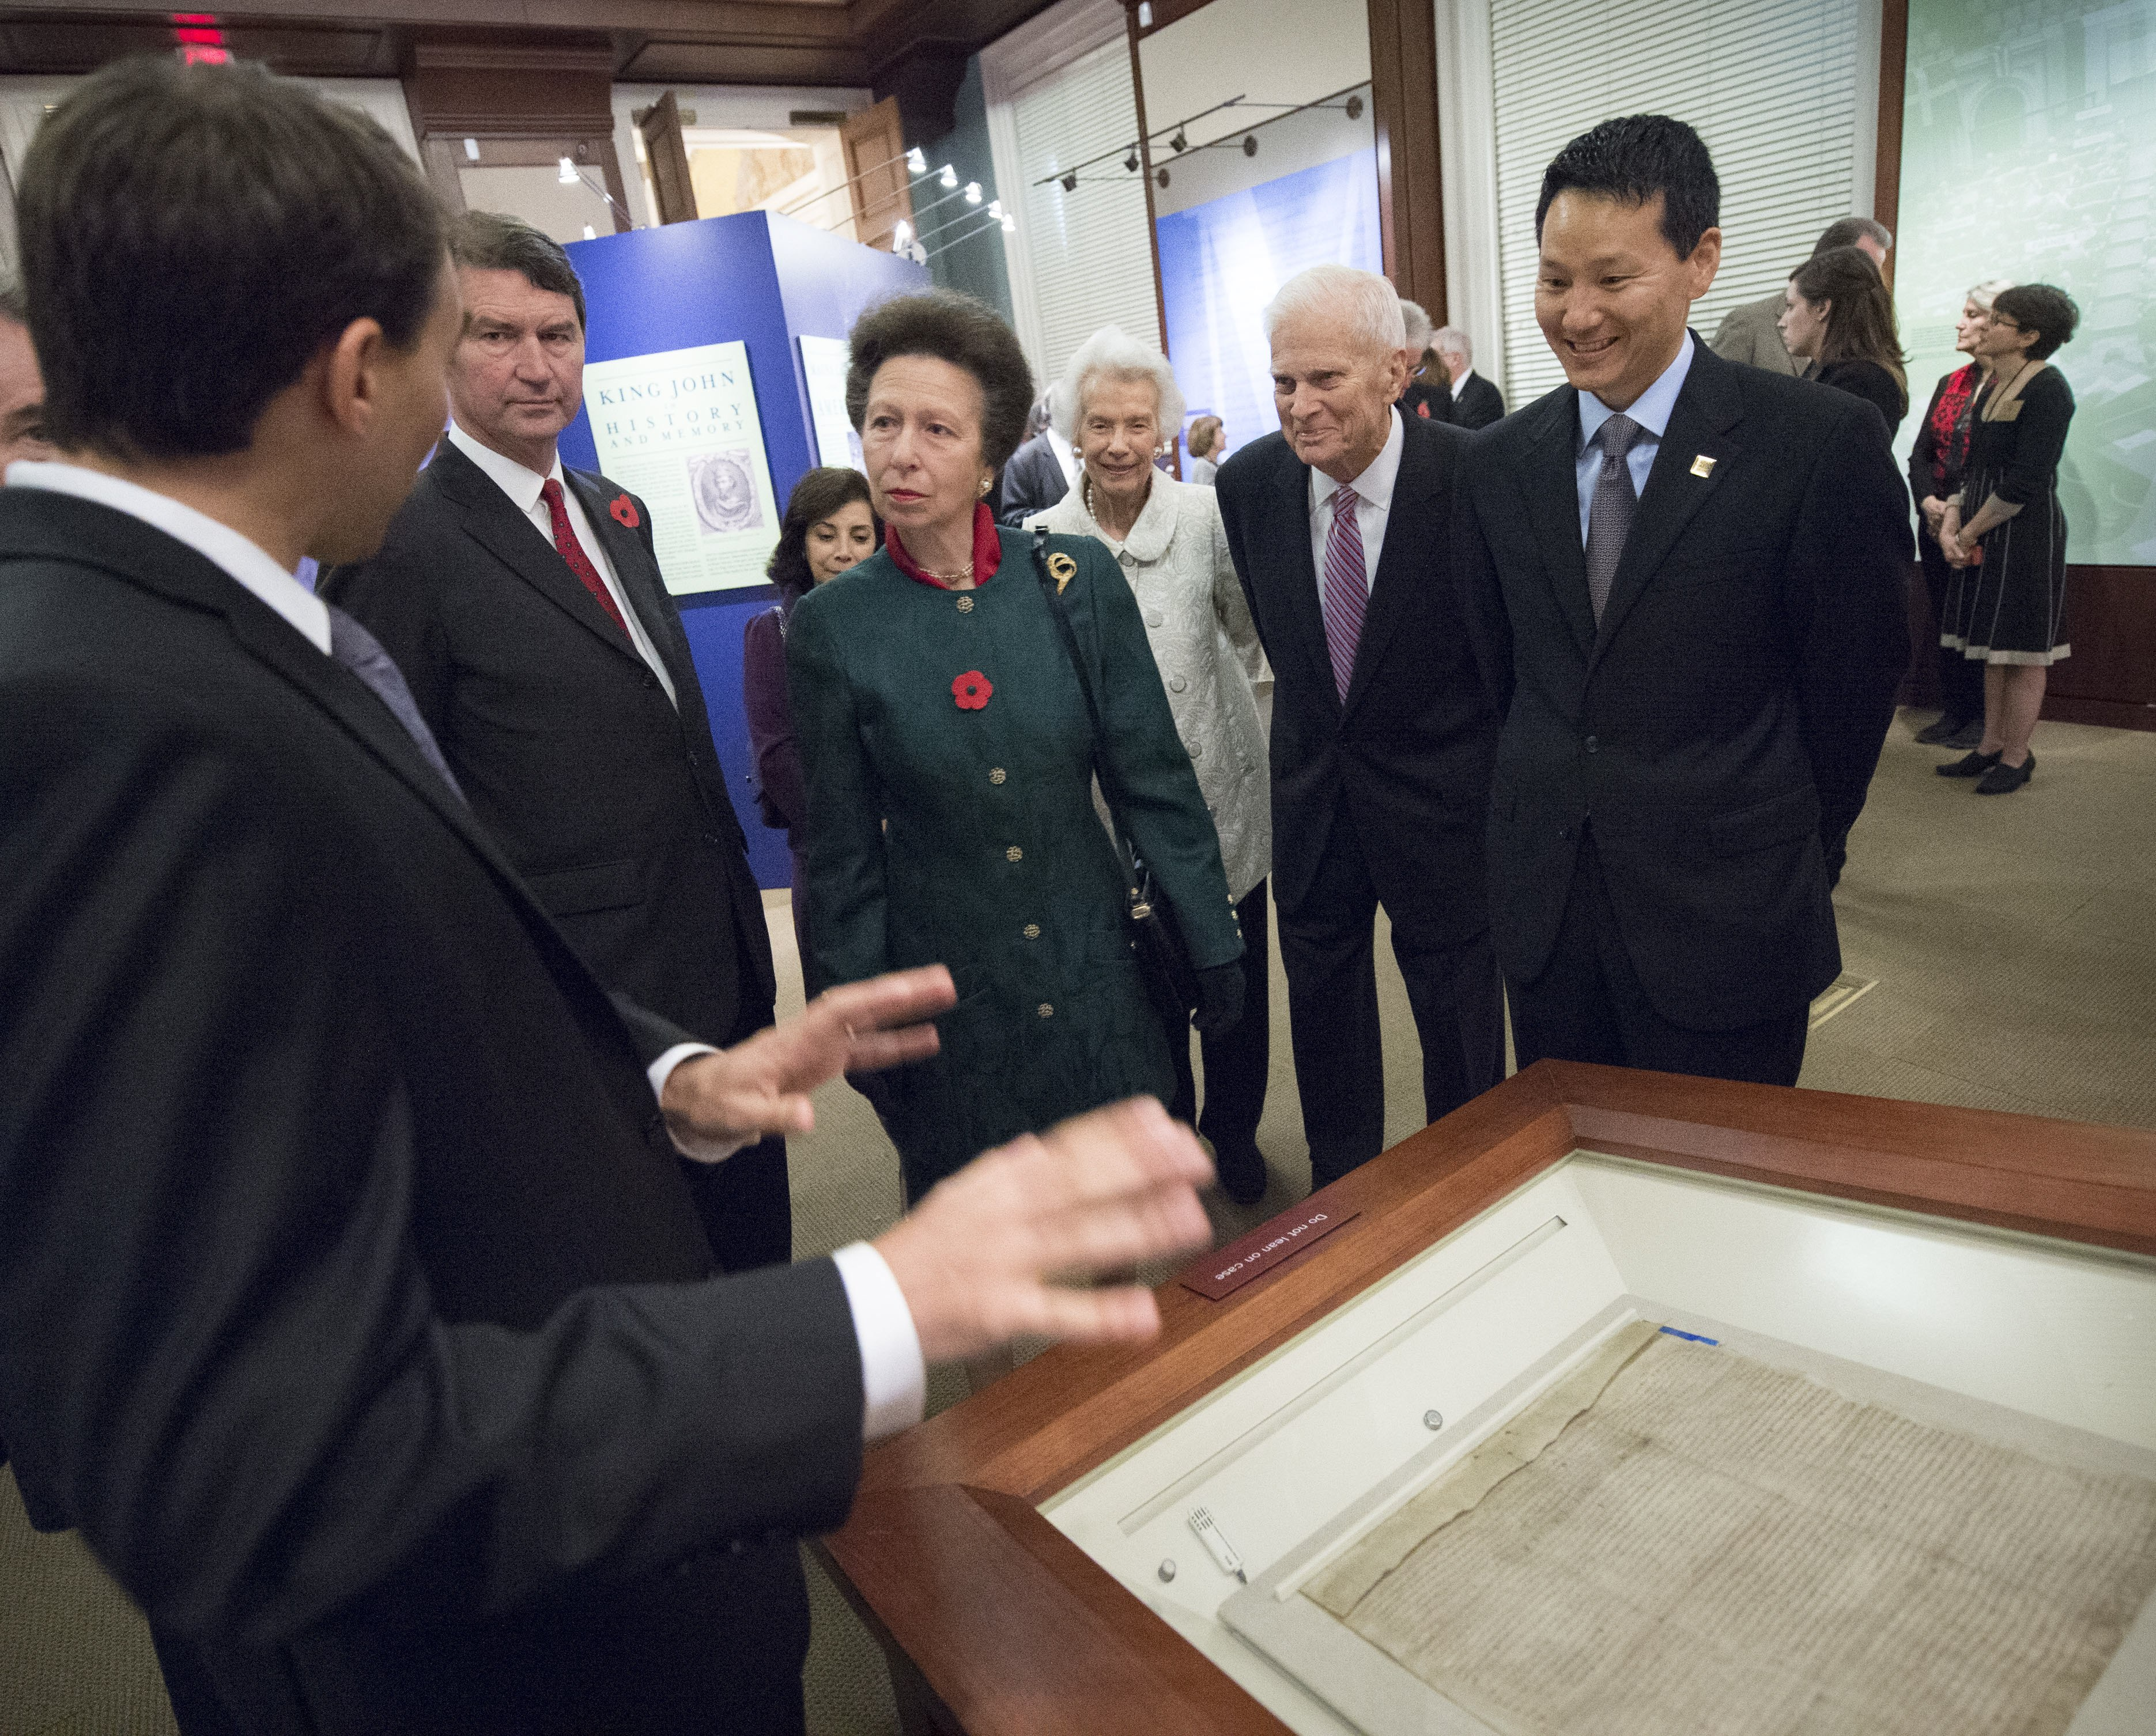 The Lincoln Magna Carta manuscript on display in the Library of Congress in November 2014. More than 200,000 people went to see it when it was on display in Washington and Massachusetts.